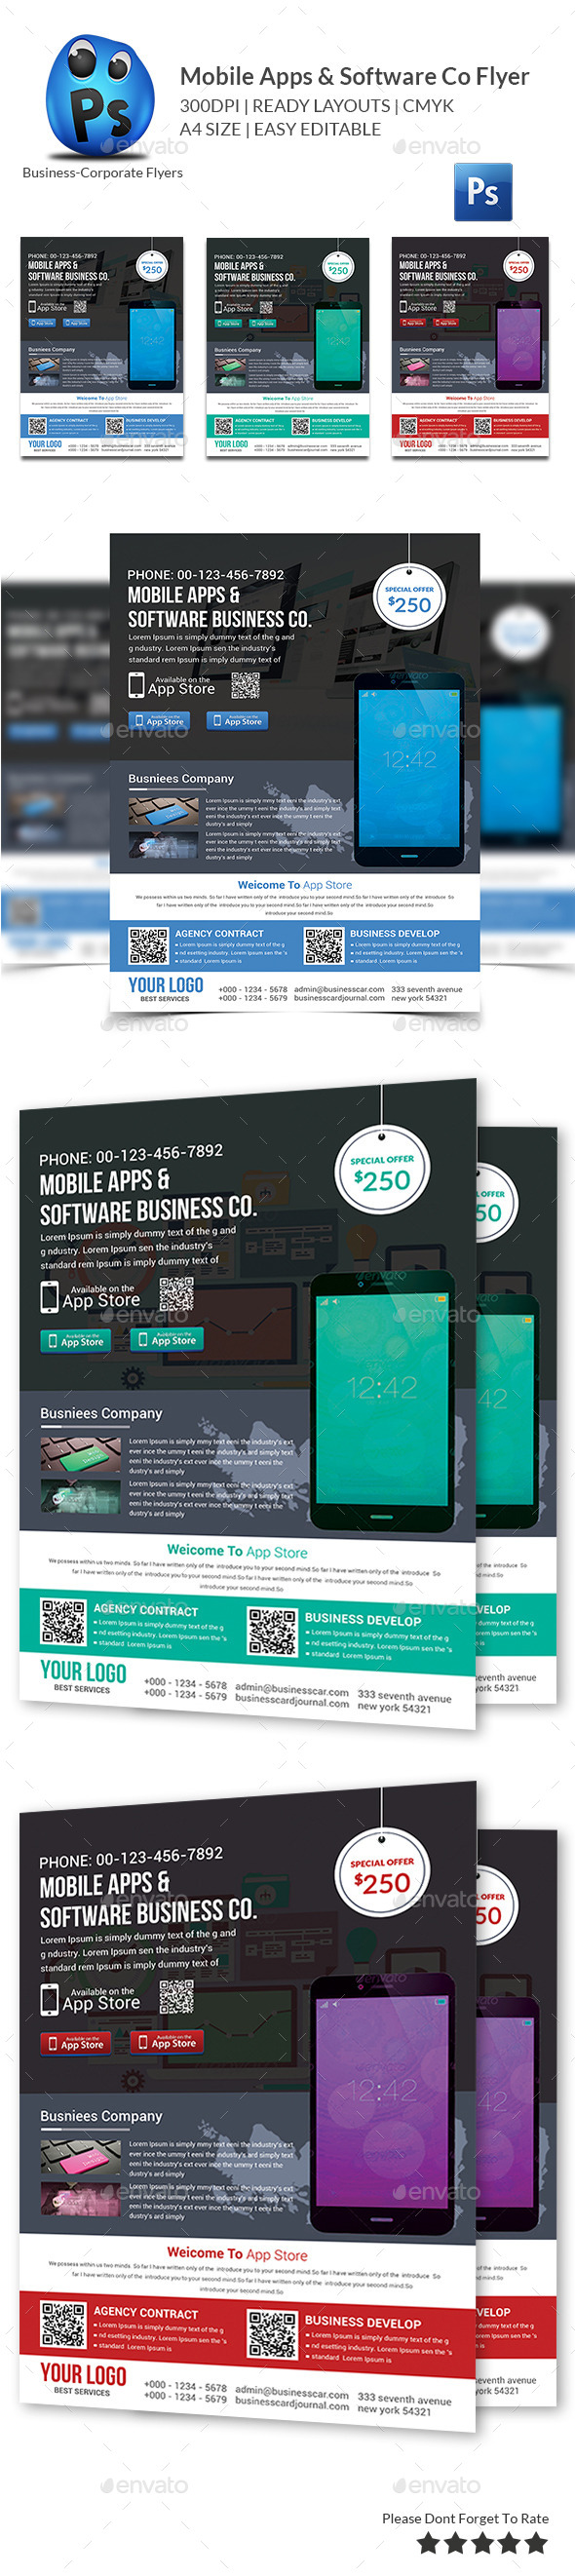 GraphicRiver Mobile Apps & Software Co Flyer 9941775